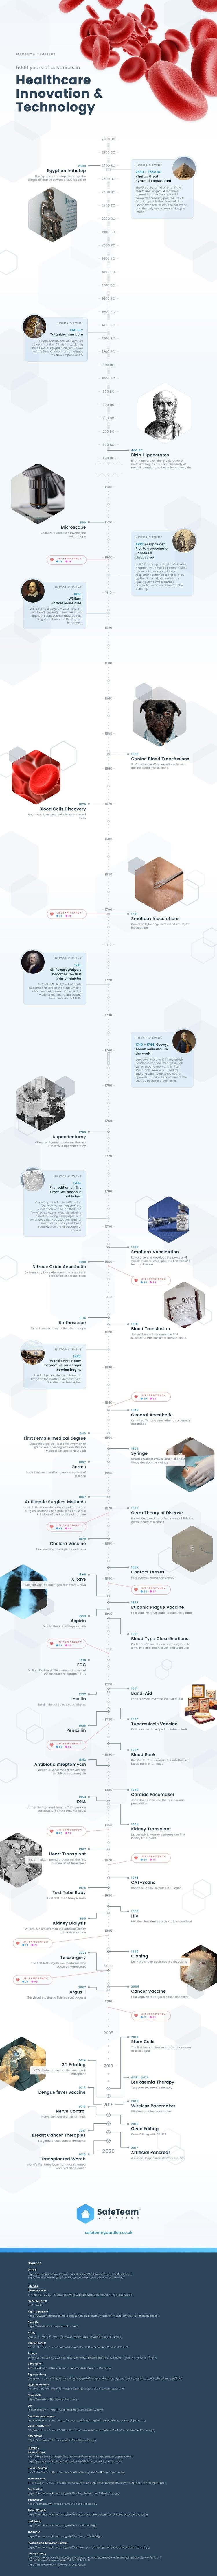 Medtech Timeline - Advances in Healthcare #infographic